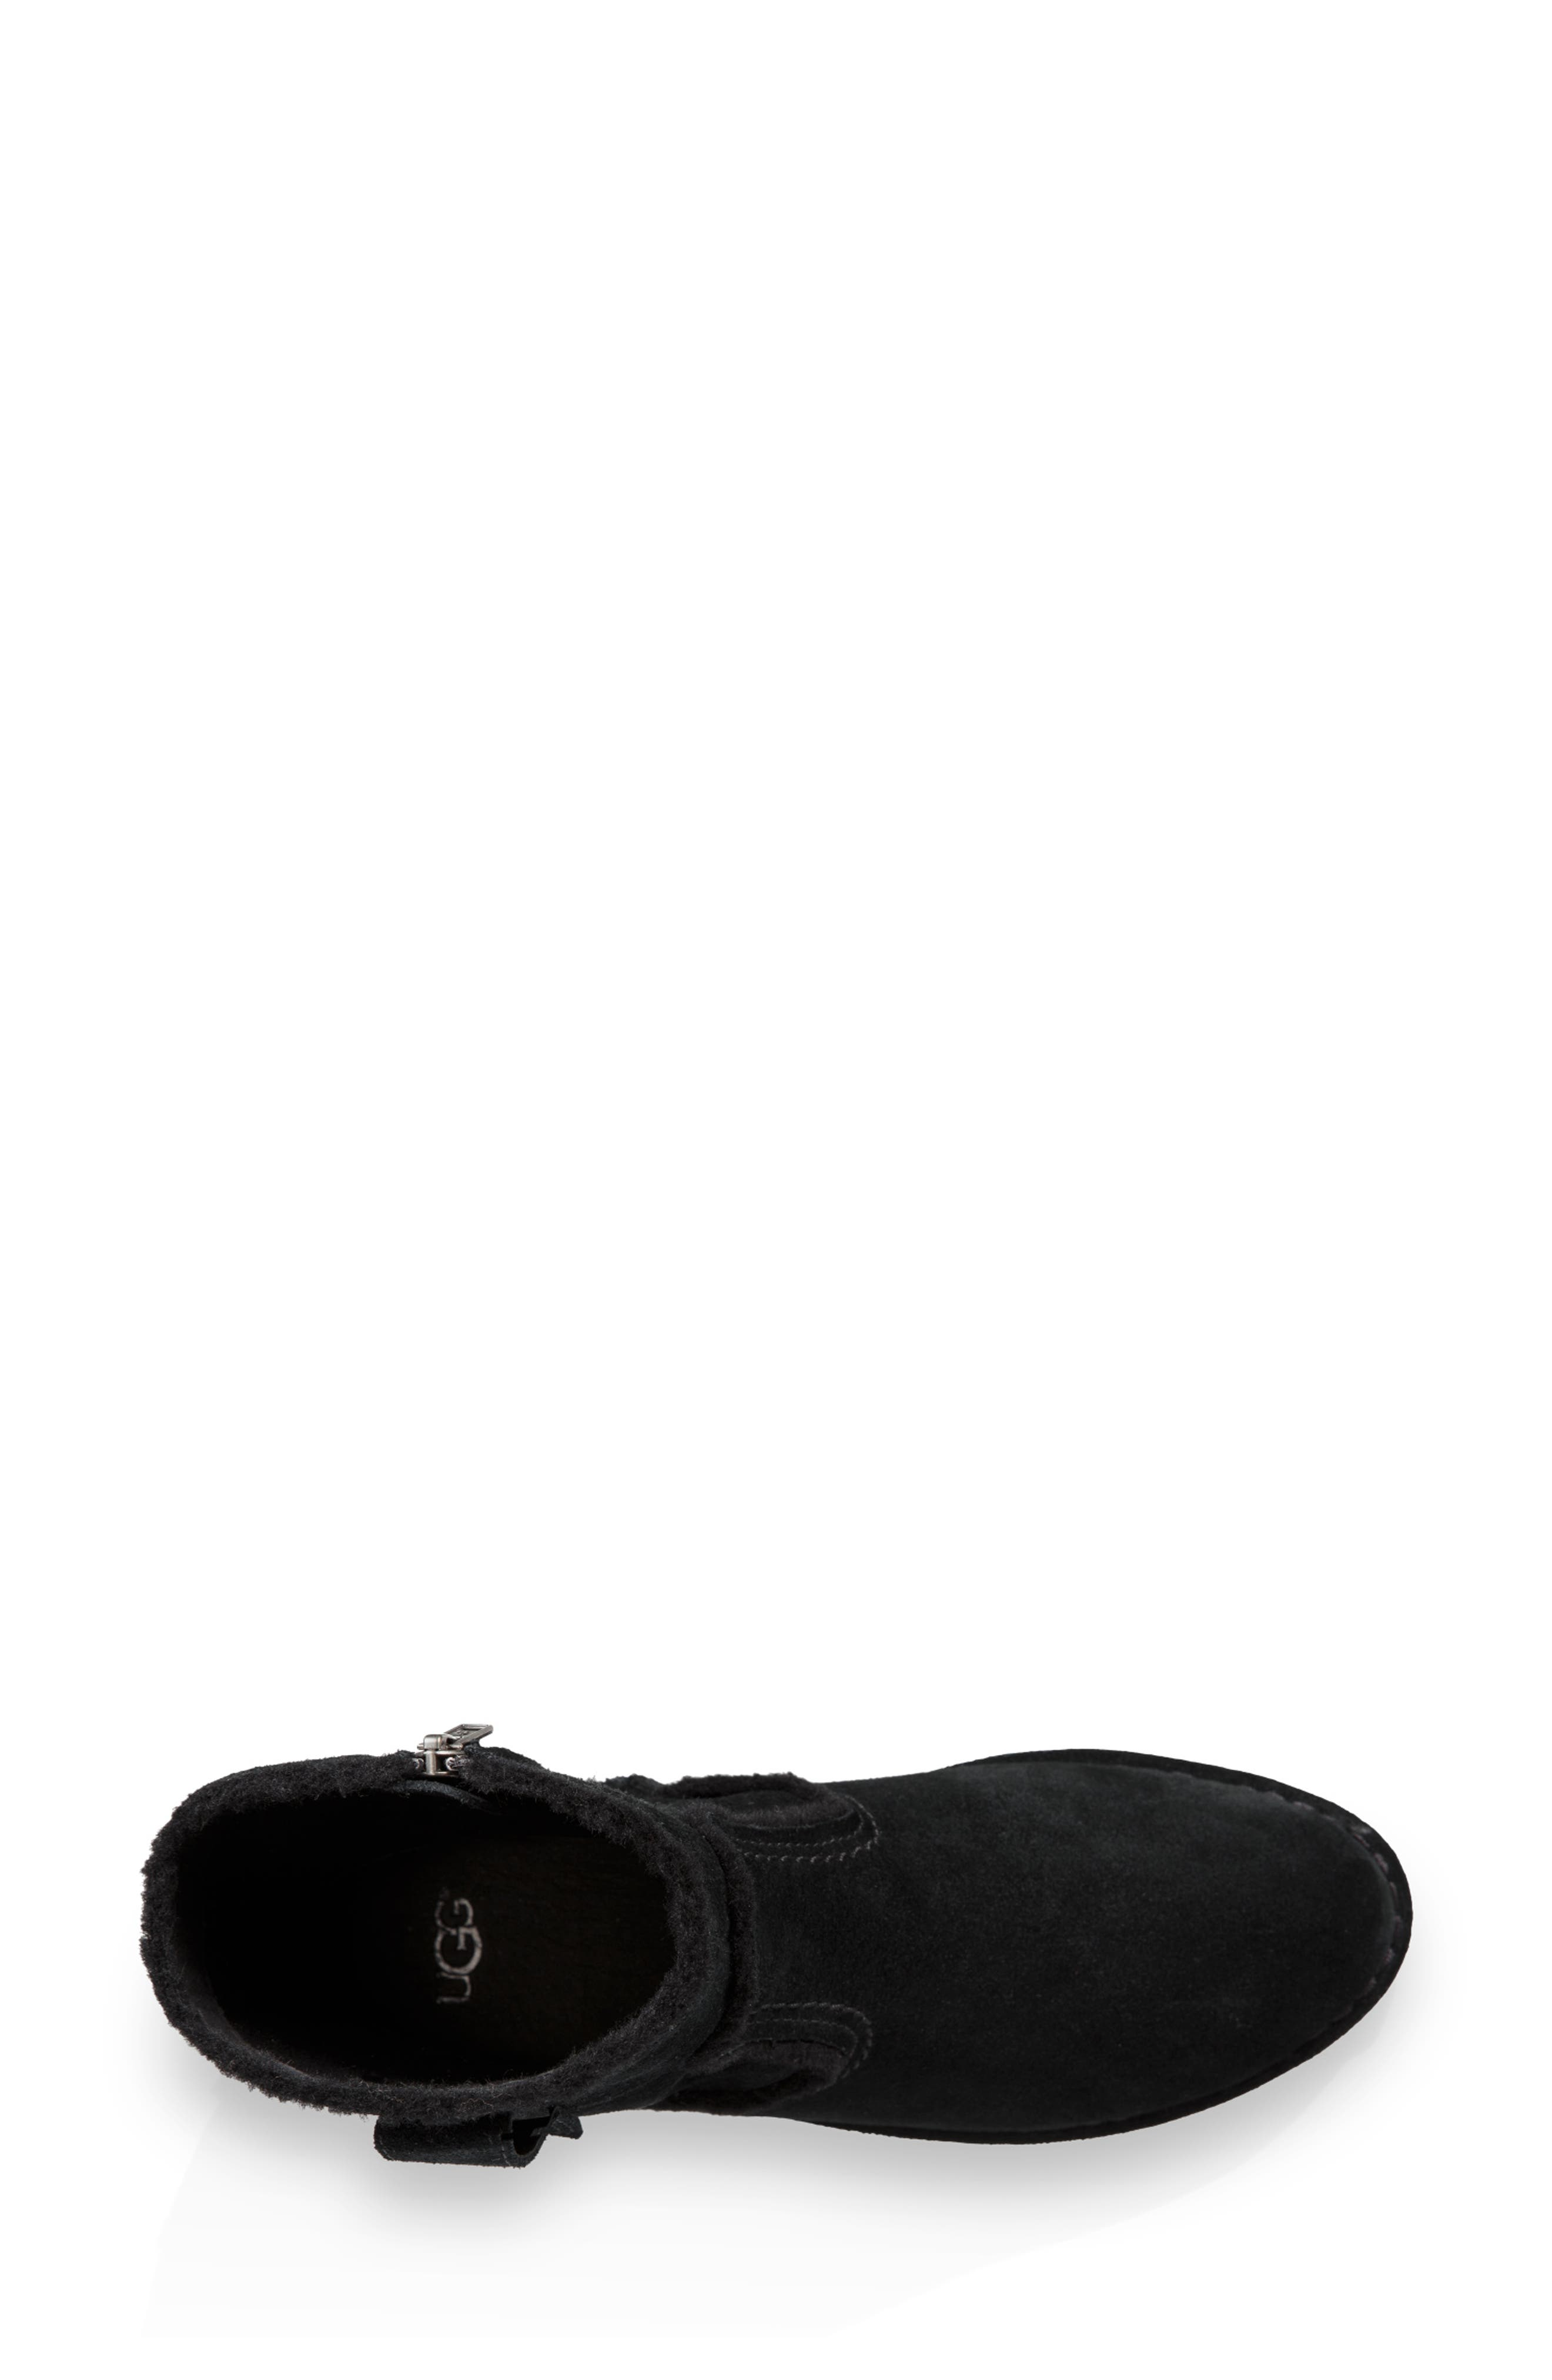 UGG<SUP>®</SUP>, Catica Boot, Alternate thumbnail 4, color, 001